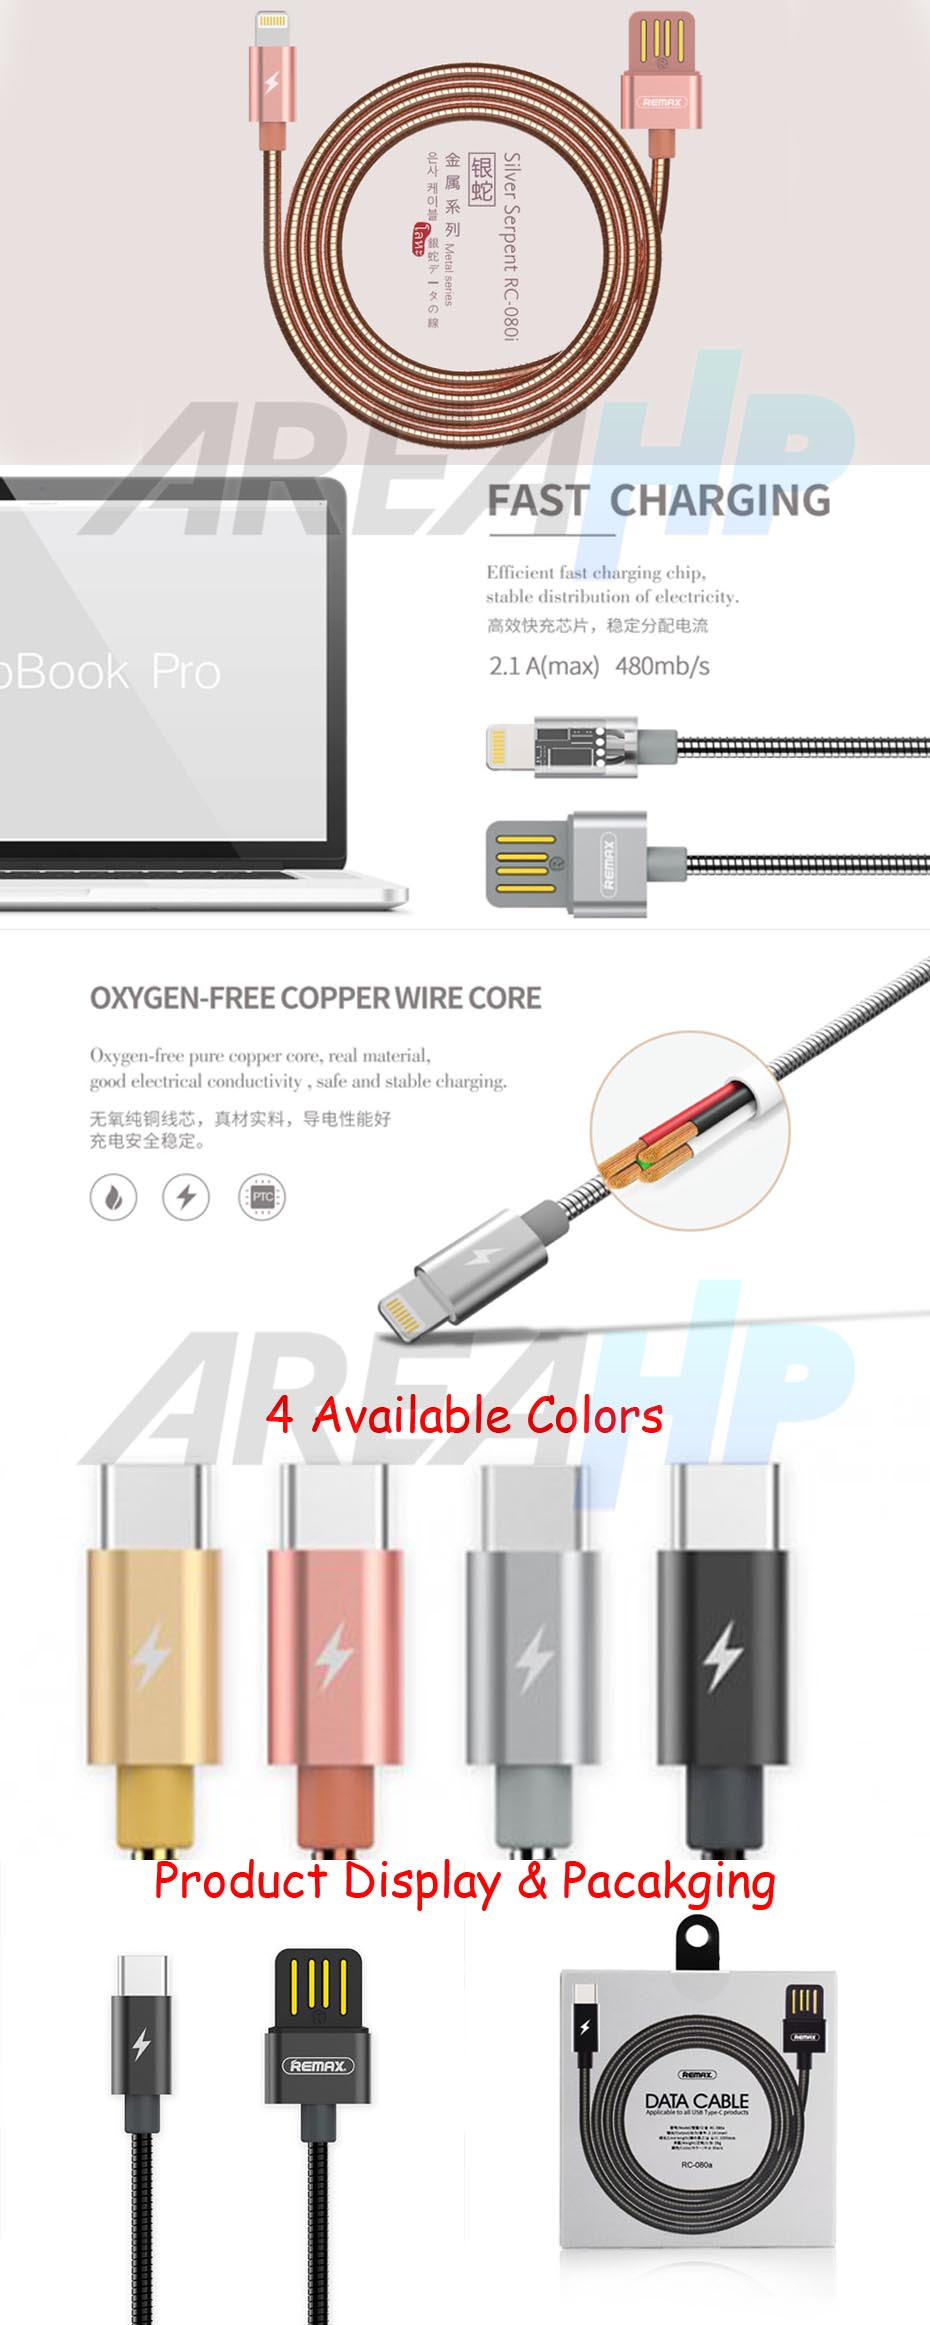 Remax Silver Serpent Type C USB Fast Charging Data Cable 1M RC-080A Overview